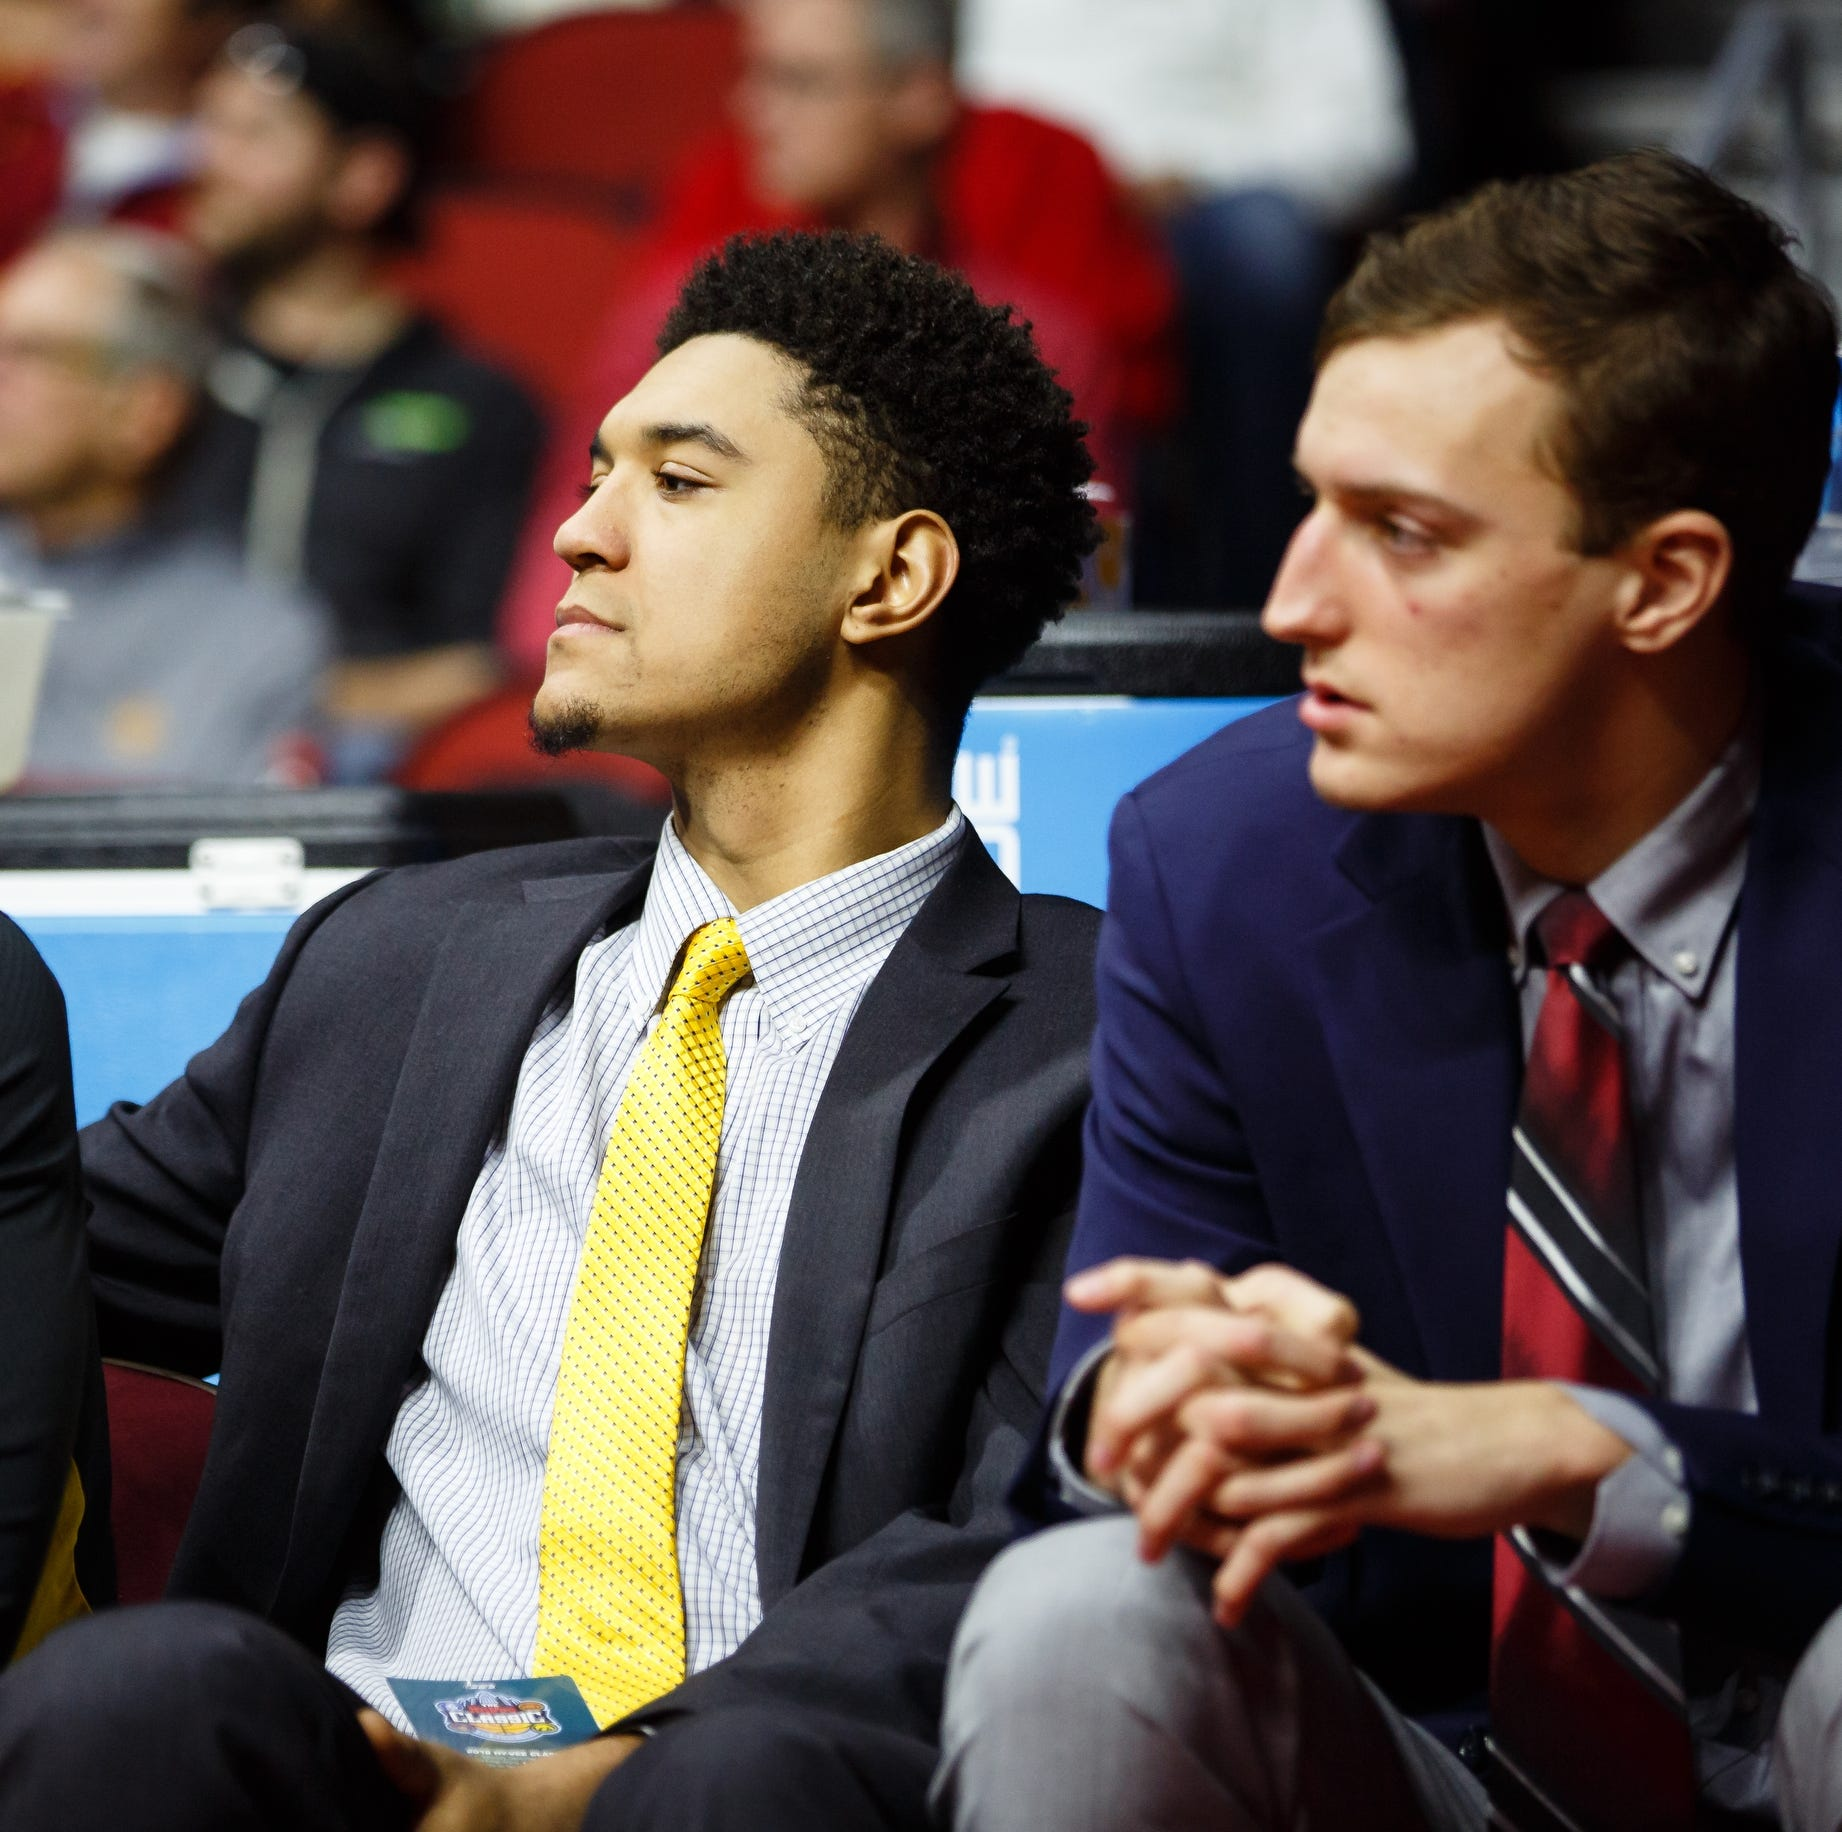 Iowa men's basketball: Cordell Pemsl has knee surgery, to miss remainder of season